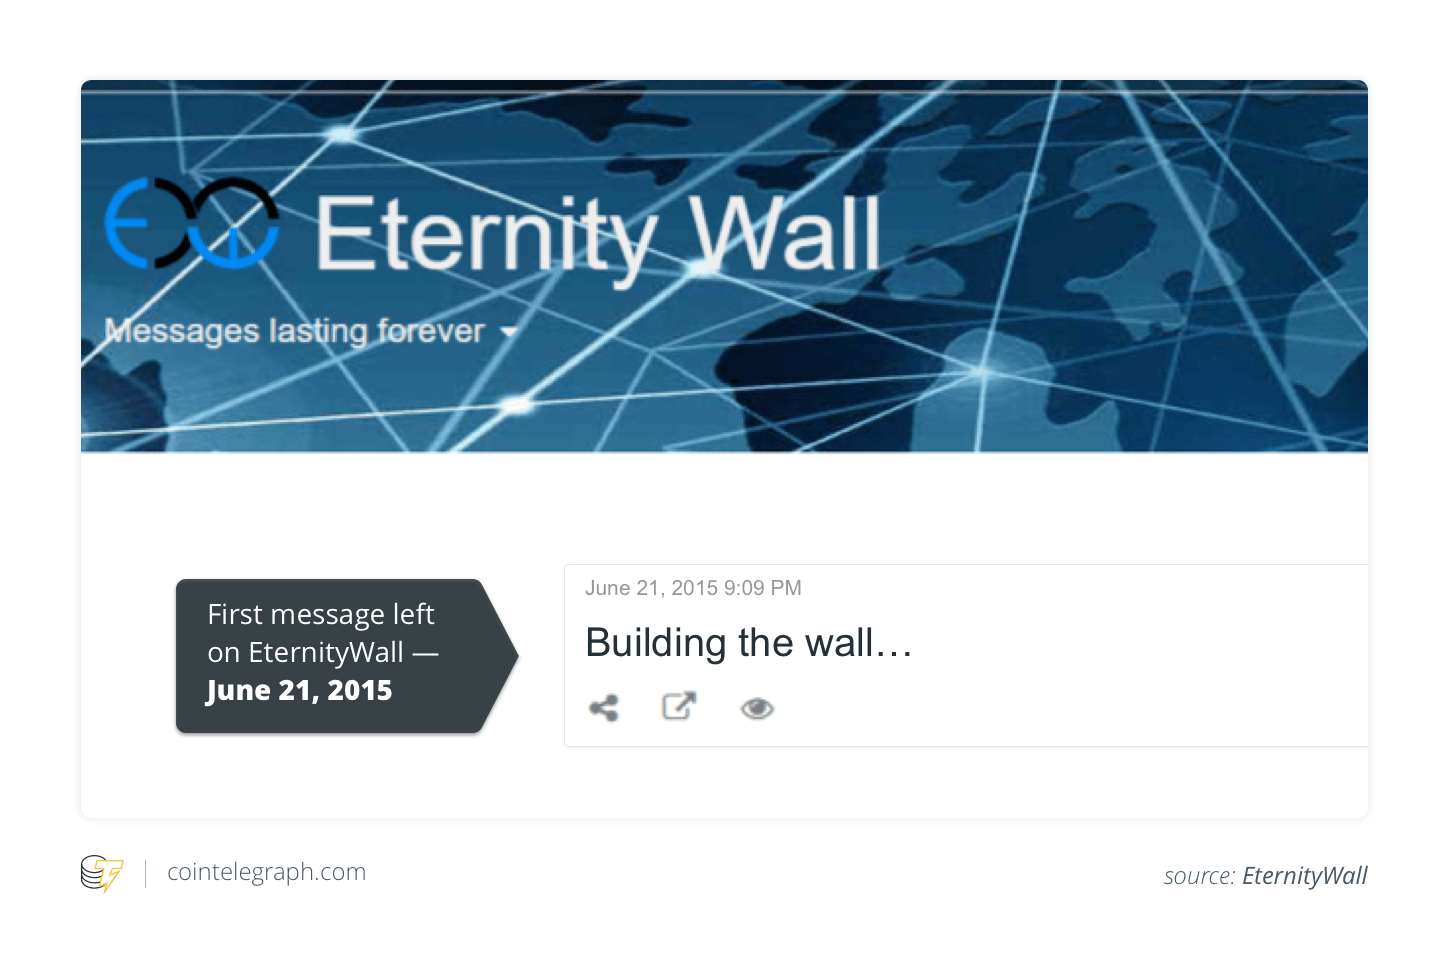 Eternity Wall